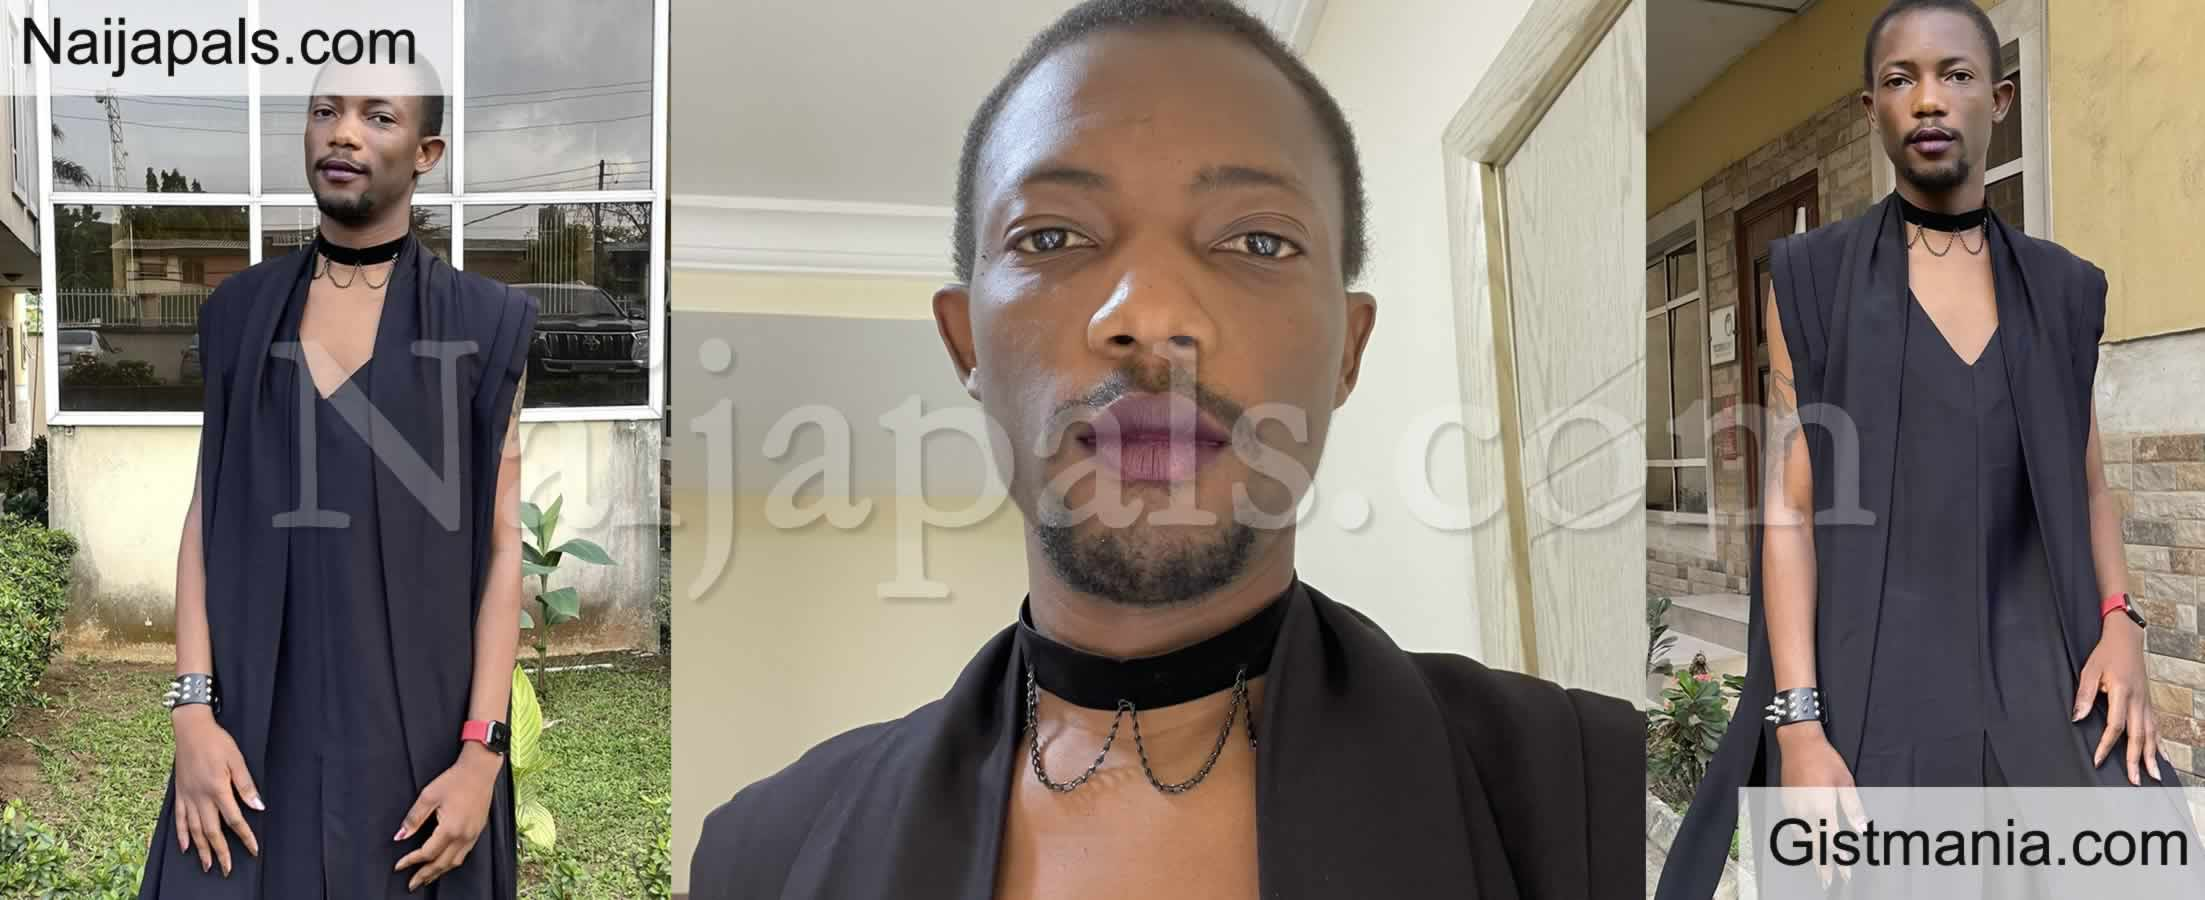 <img alt='.' class='lazyload' data-src='https://img.gistmania.com/emot/shocked.gif' /> <b>Paystack Co-founder, Ezra Olubi Causes Stir With His Awkward Outfit to a Wedding Ceremony</b>